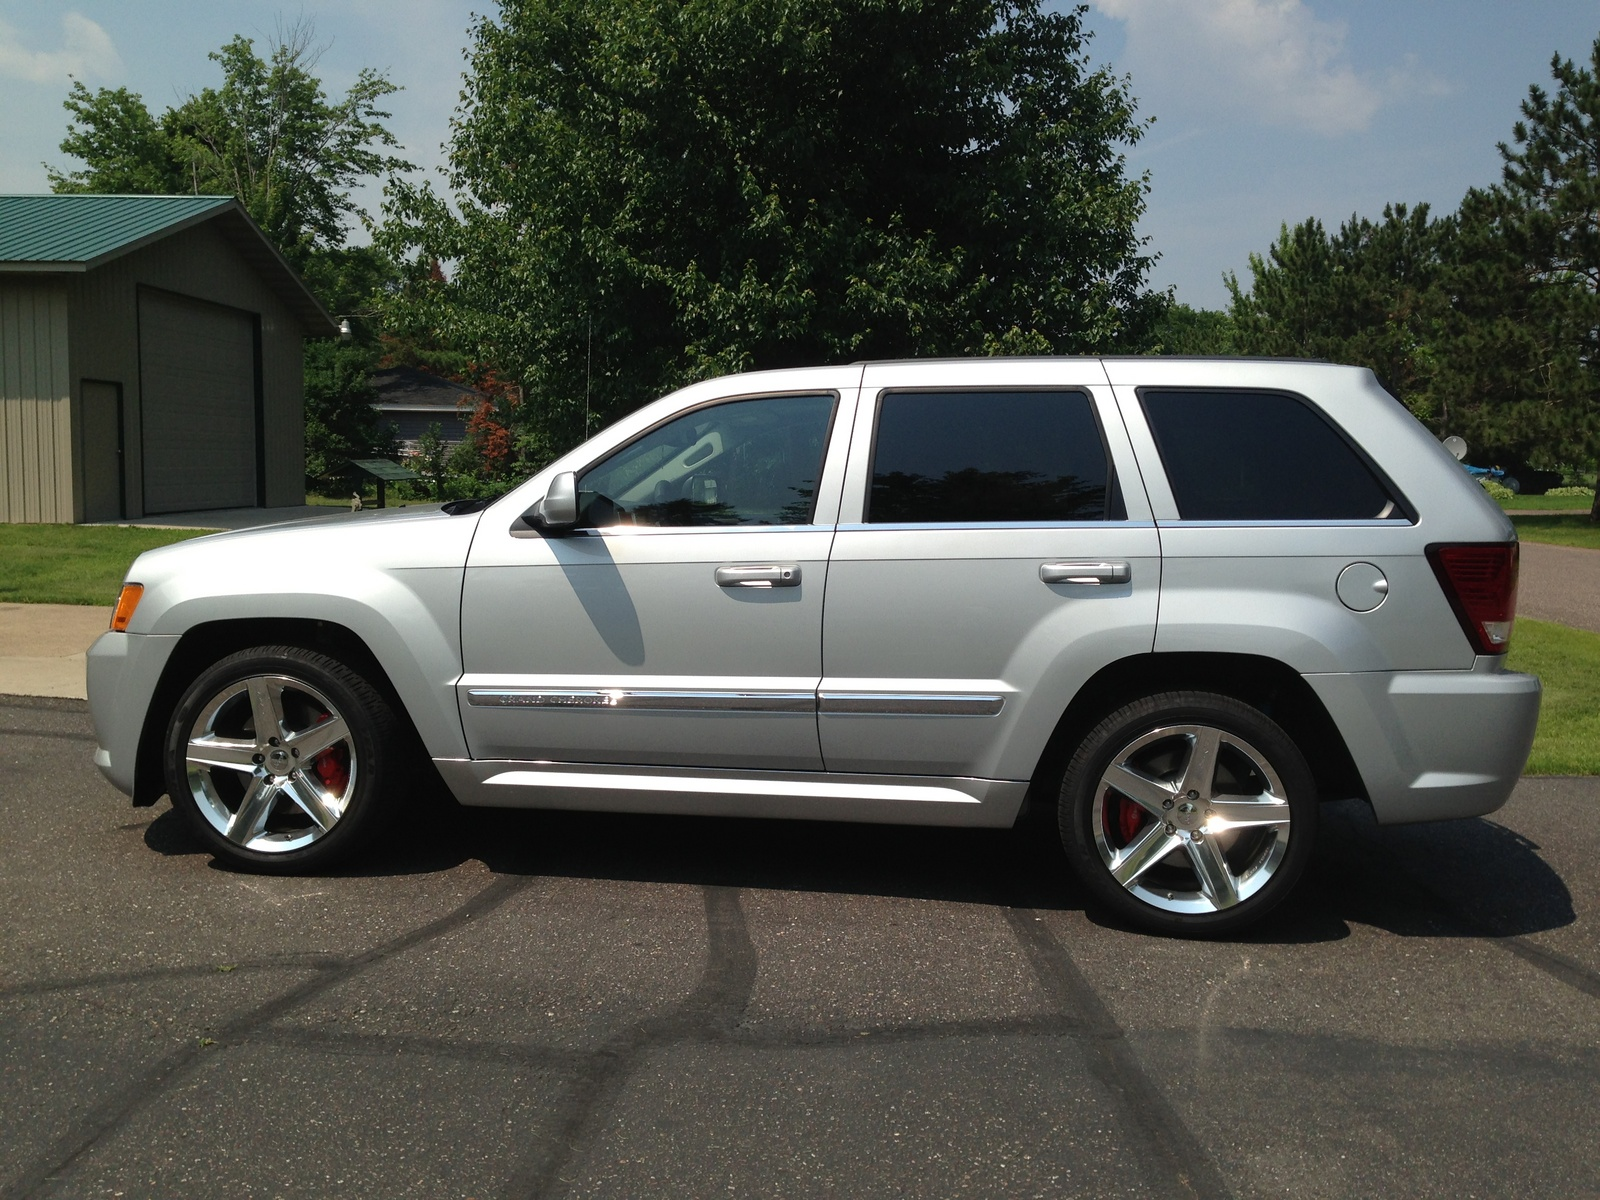 2010 jeep grand cherokee exterior pictures cargurus. Cars Review. Best American Auto & Cars Review